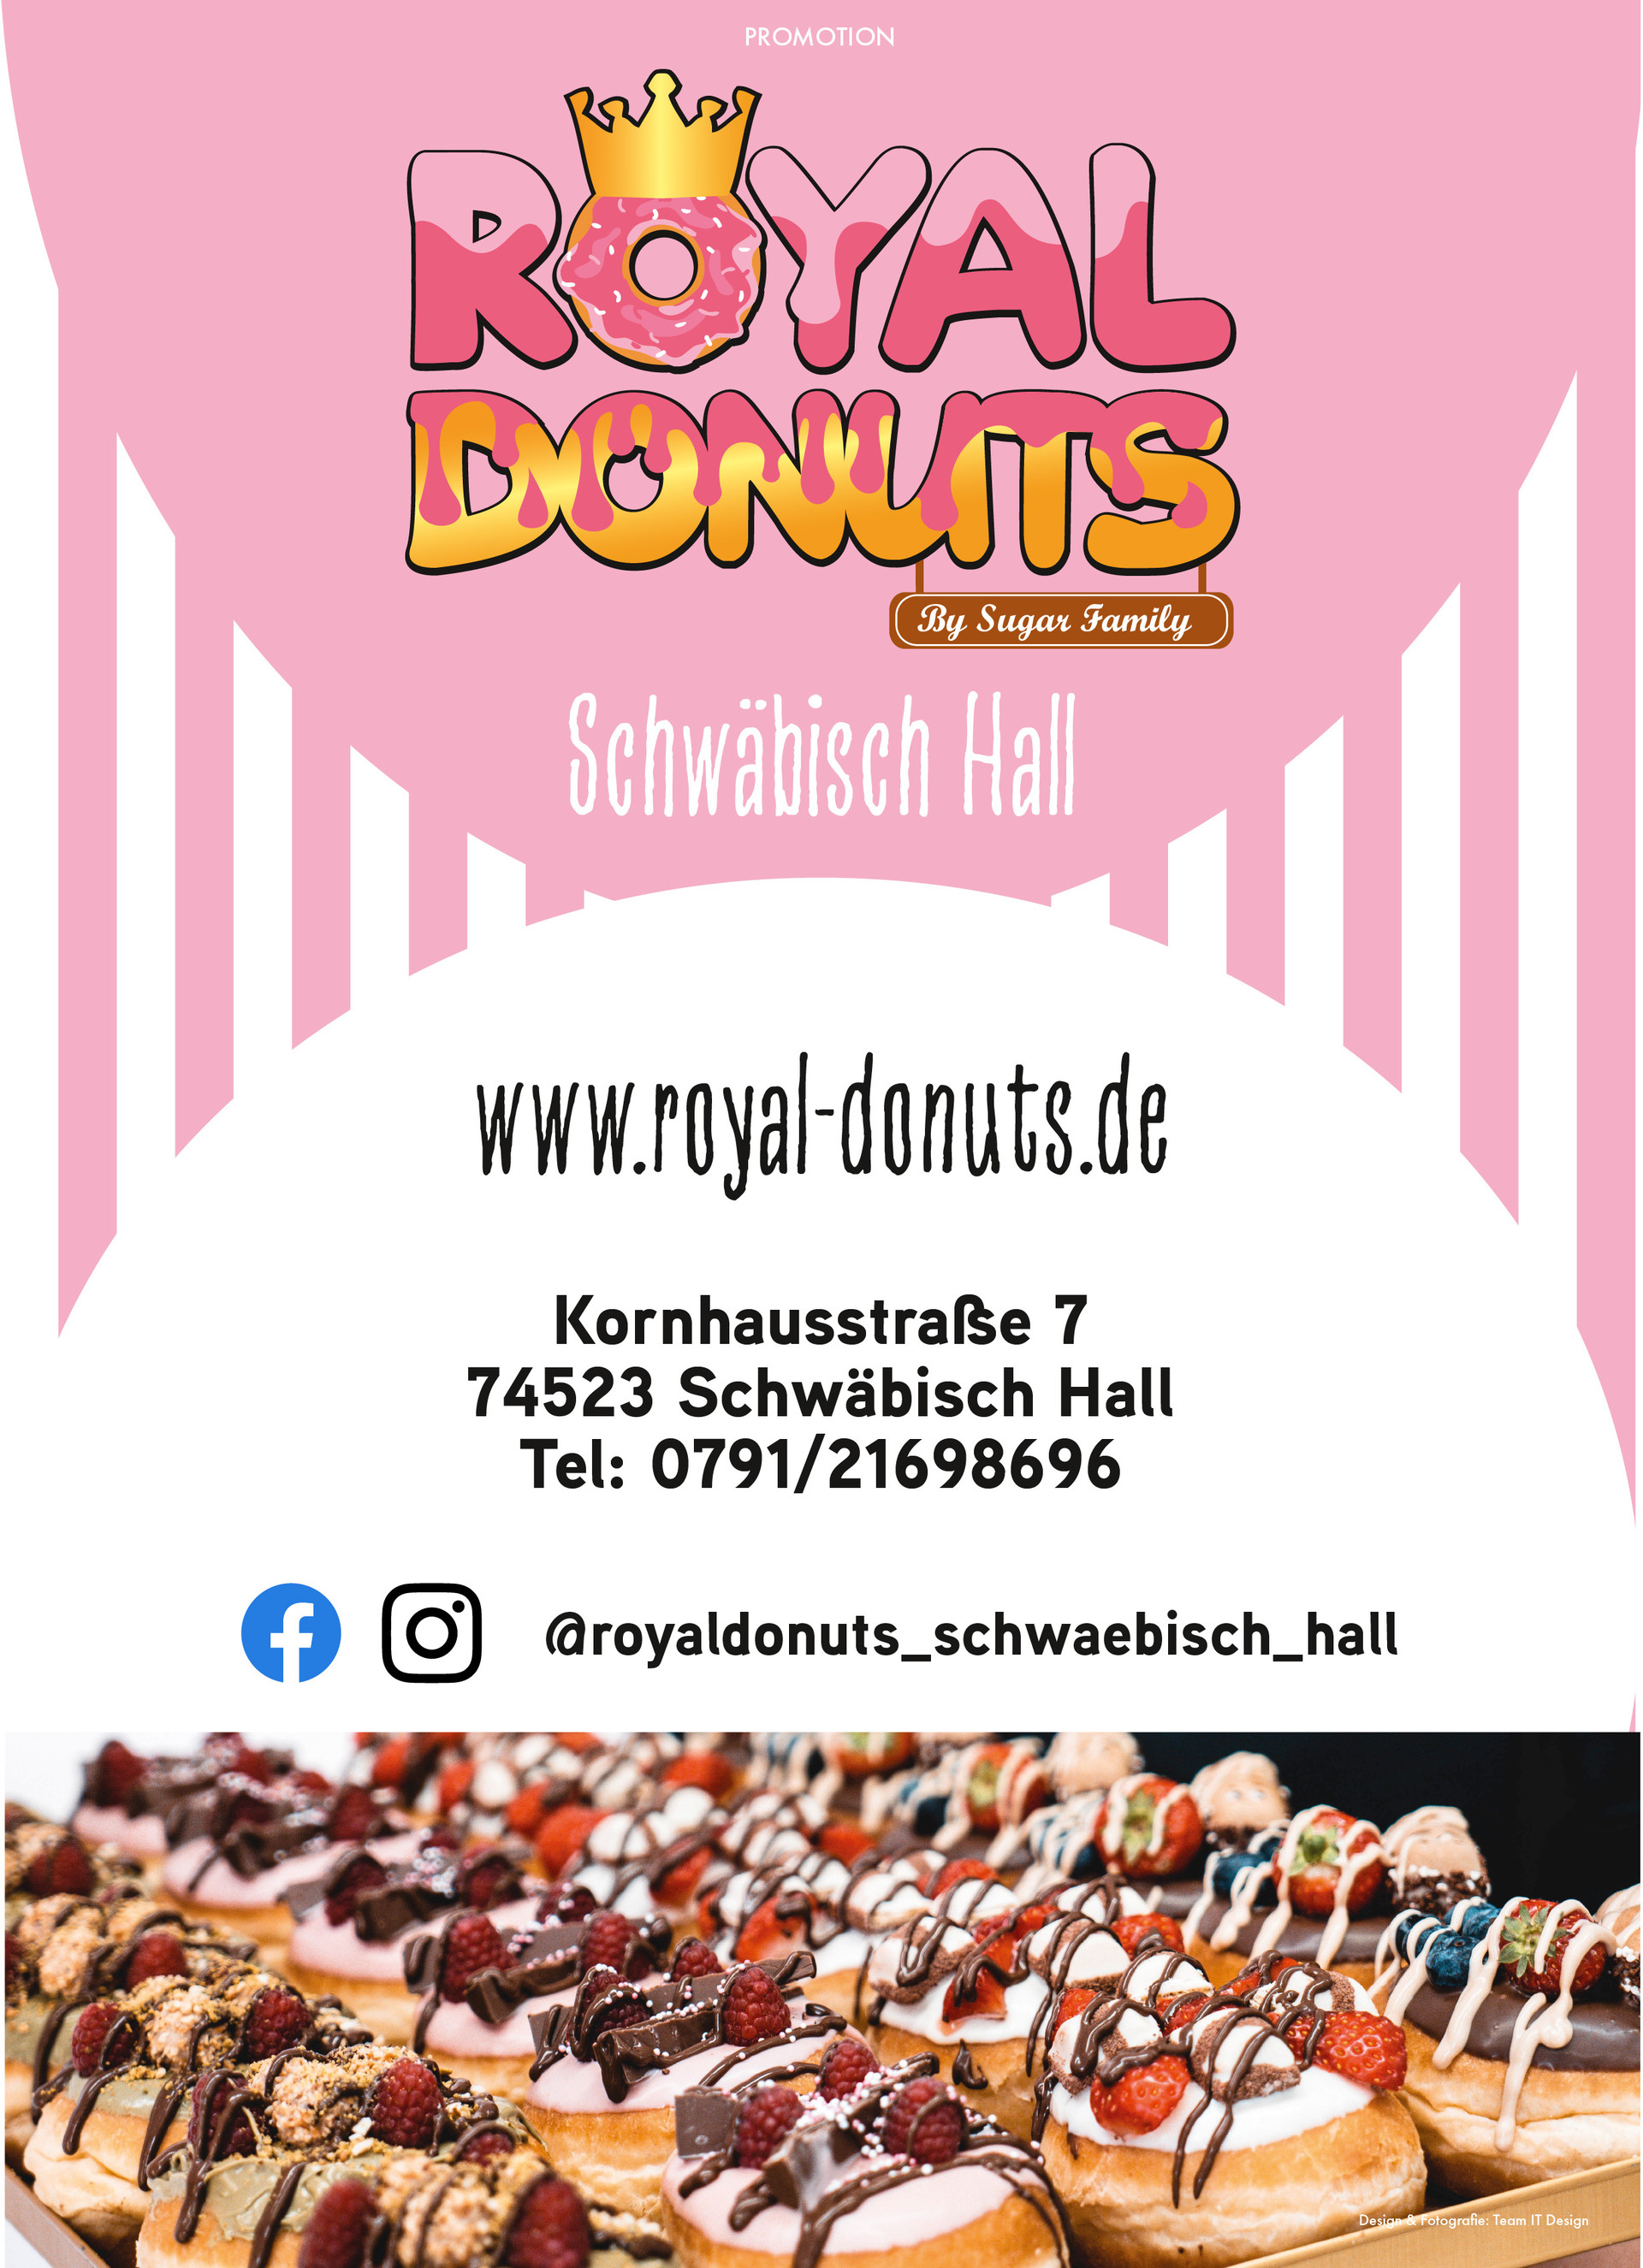 Royal Donuts Promotion